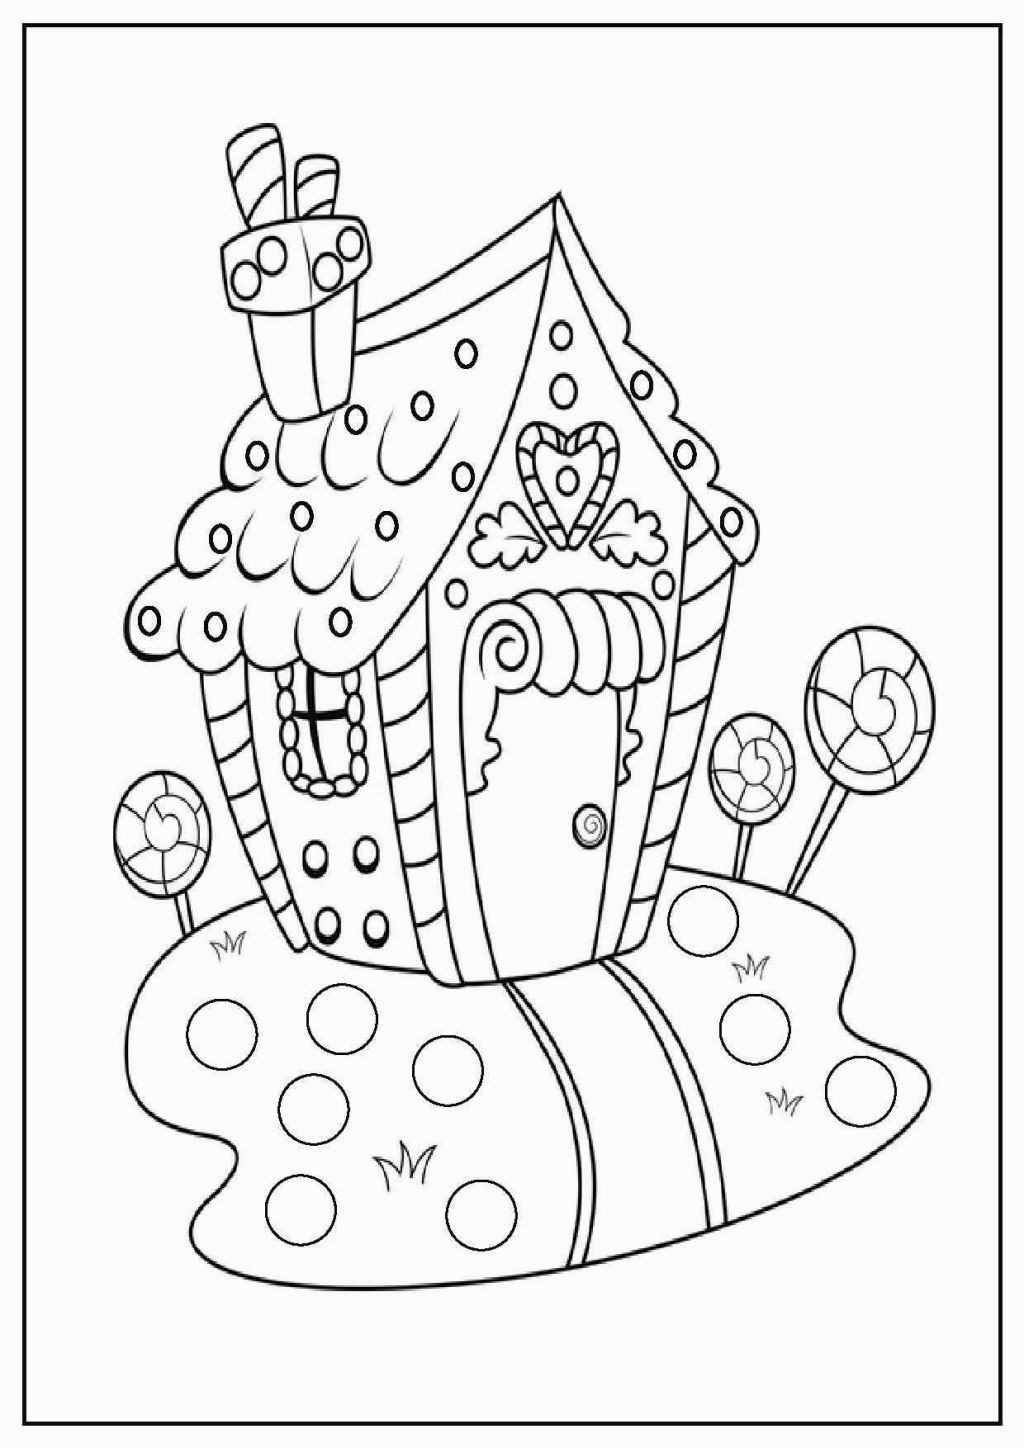 Printable Holiday Coloring Pages Printable Christmas Coloring Pages Christmas Coloring Sheets Christmas Coloring Books